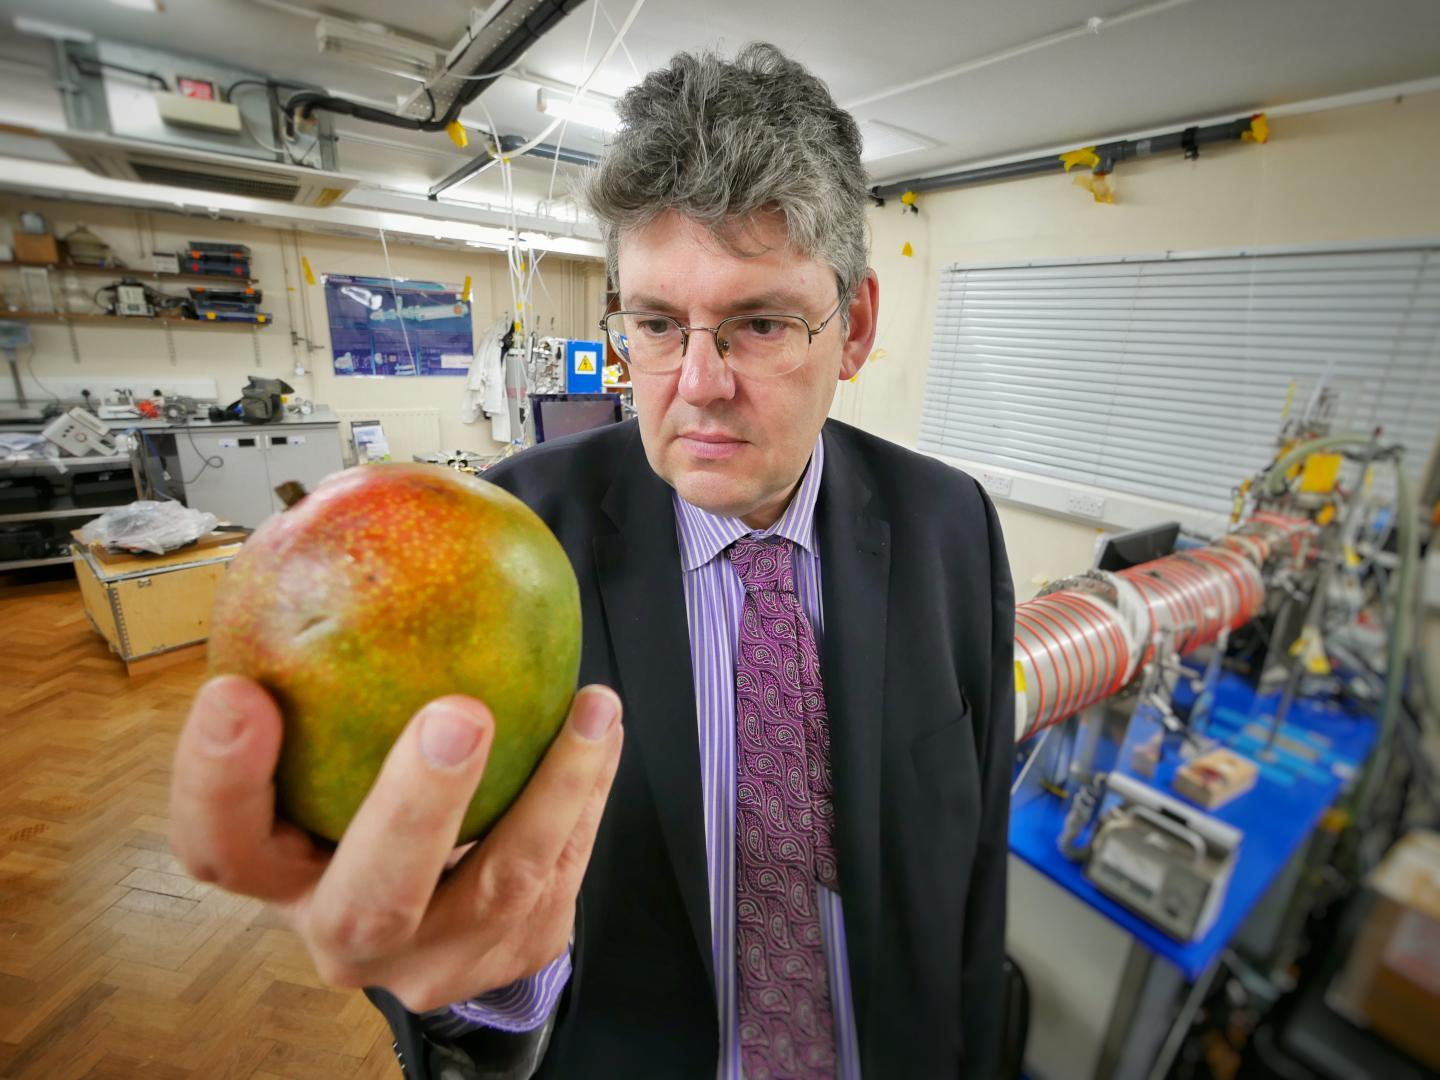 University of Leicester scientists identify way to 'sniff' ripeness of fruit